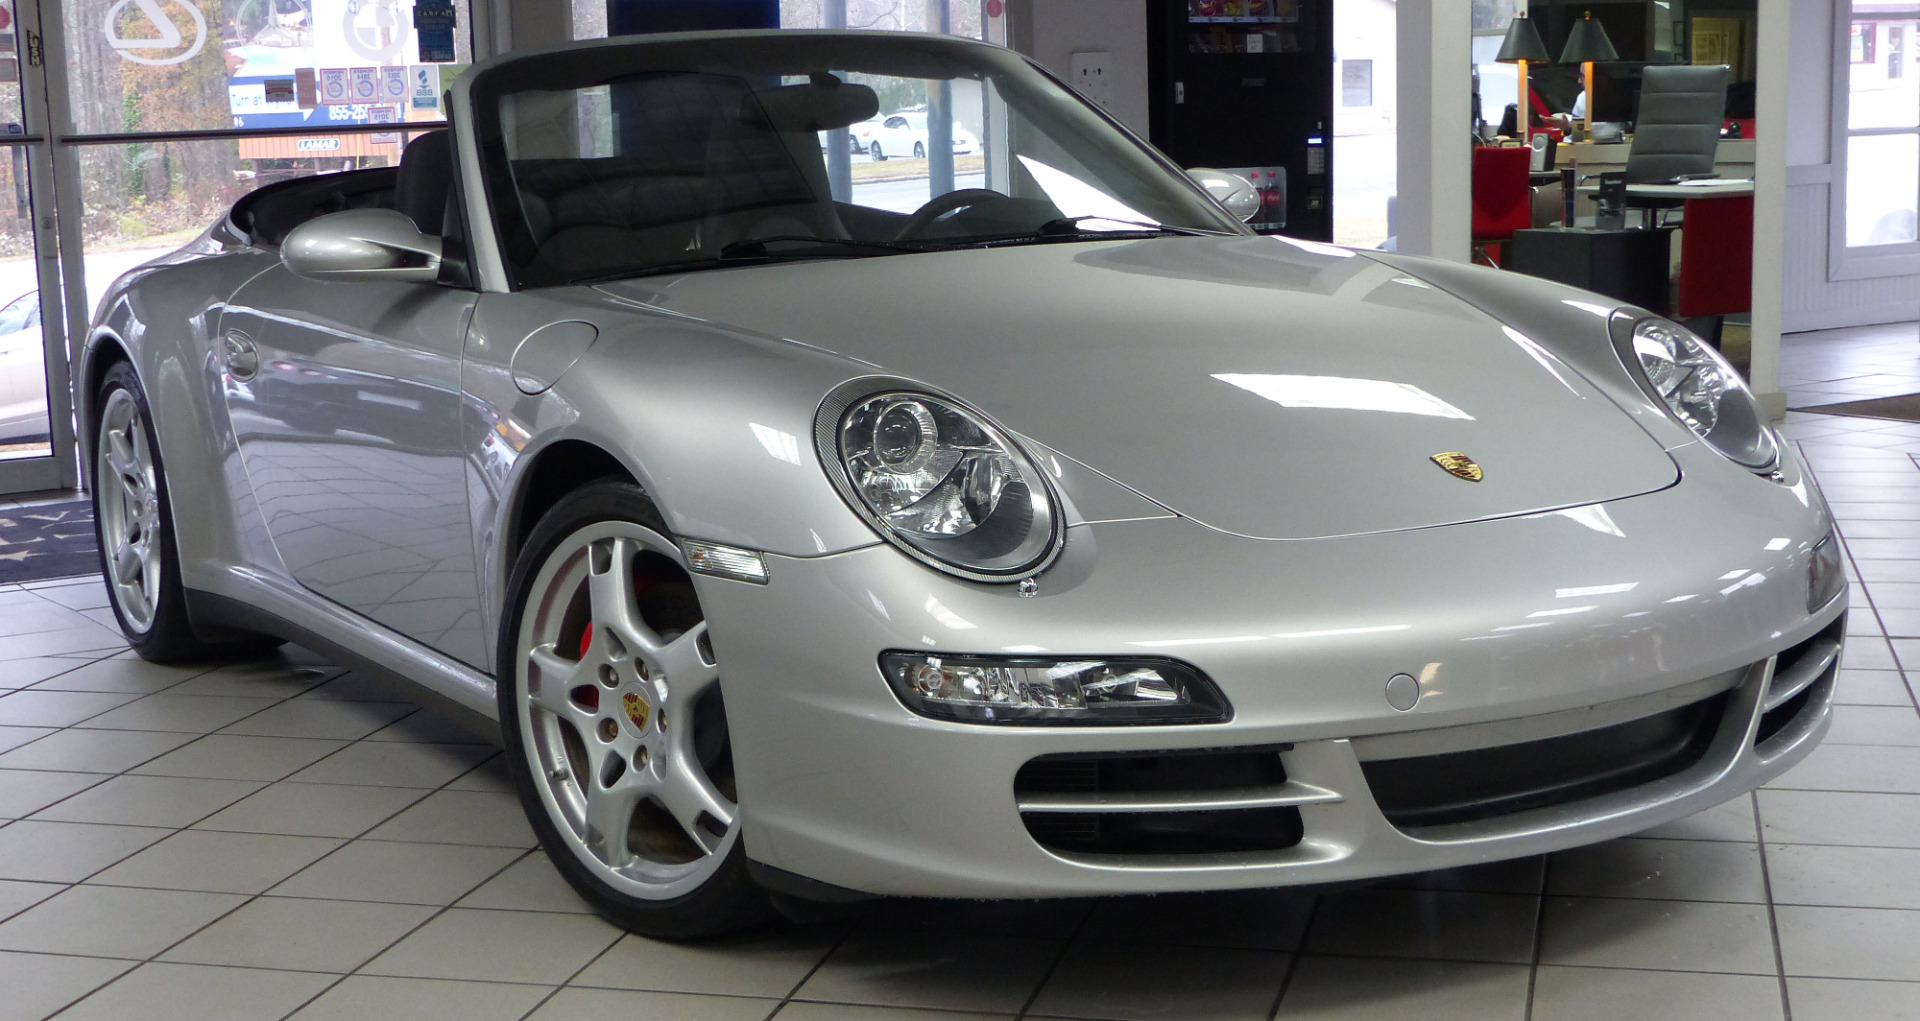 used 2008 porsche 911 carrera 4s marietta ga. Black Bedroom Furniture Sets. Home Design Ideas